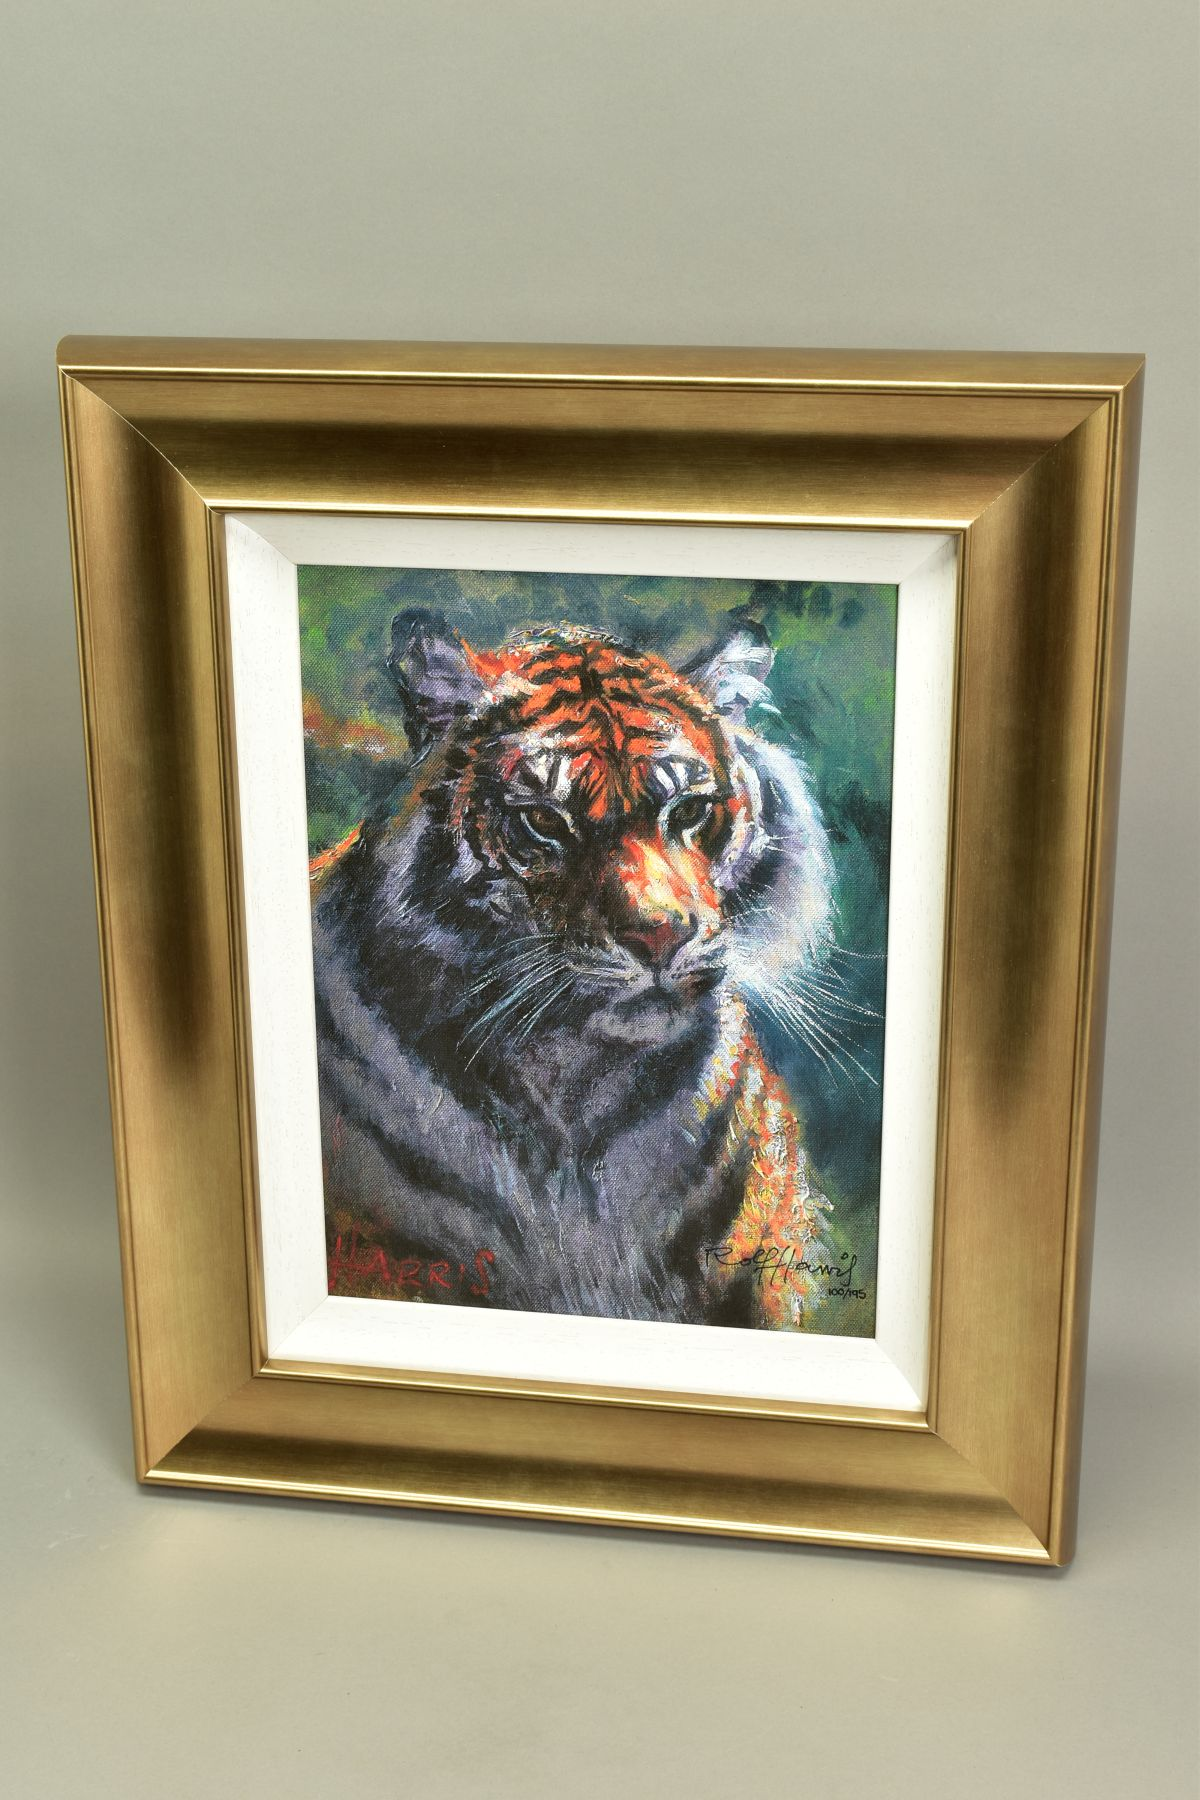 ROLF HARRIS (AUSTRALIAN 1930), 'Tiger in The Sun', a Limited Edition print, 100/95, signed bottom - Image 4 of 5